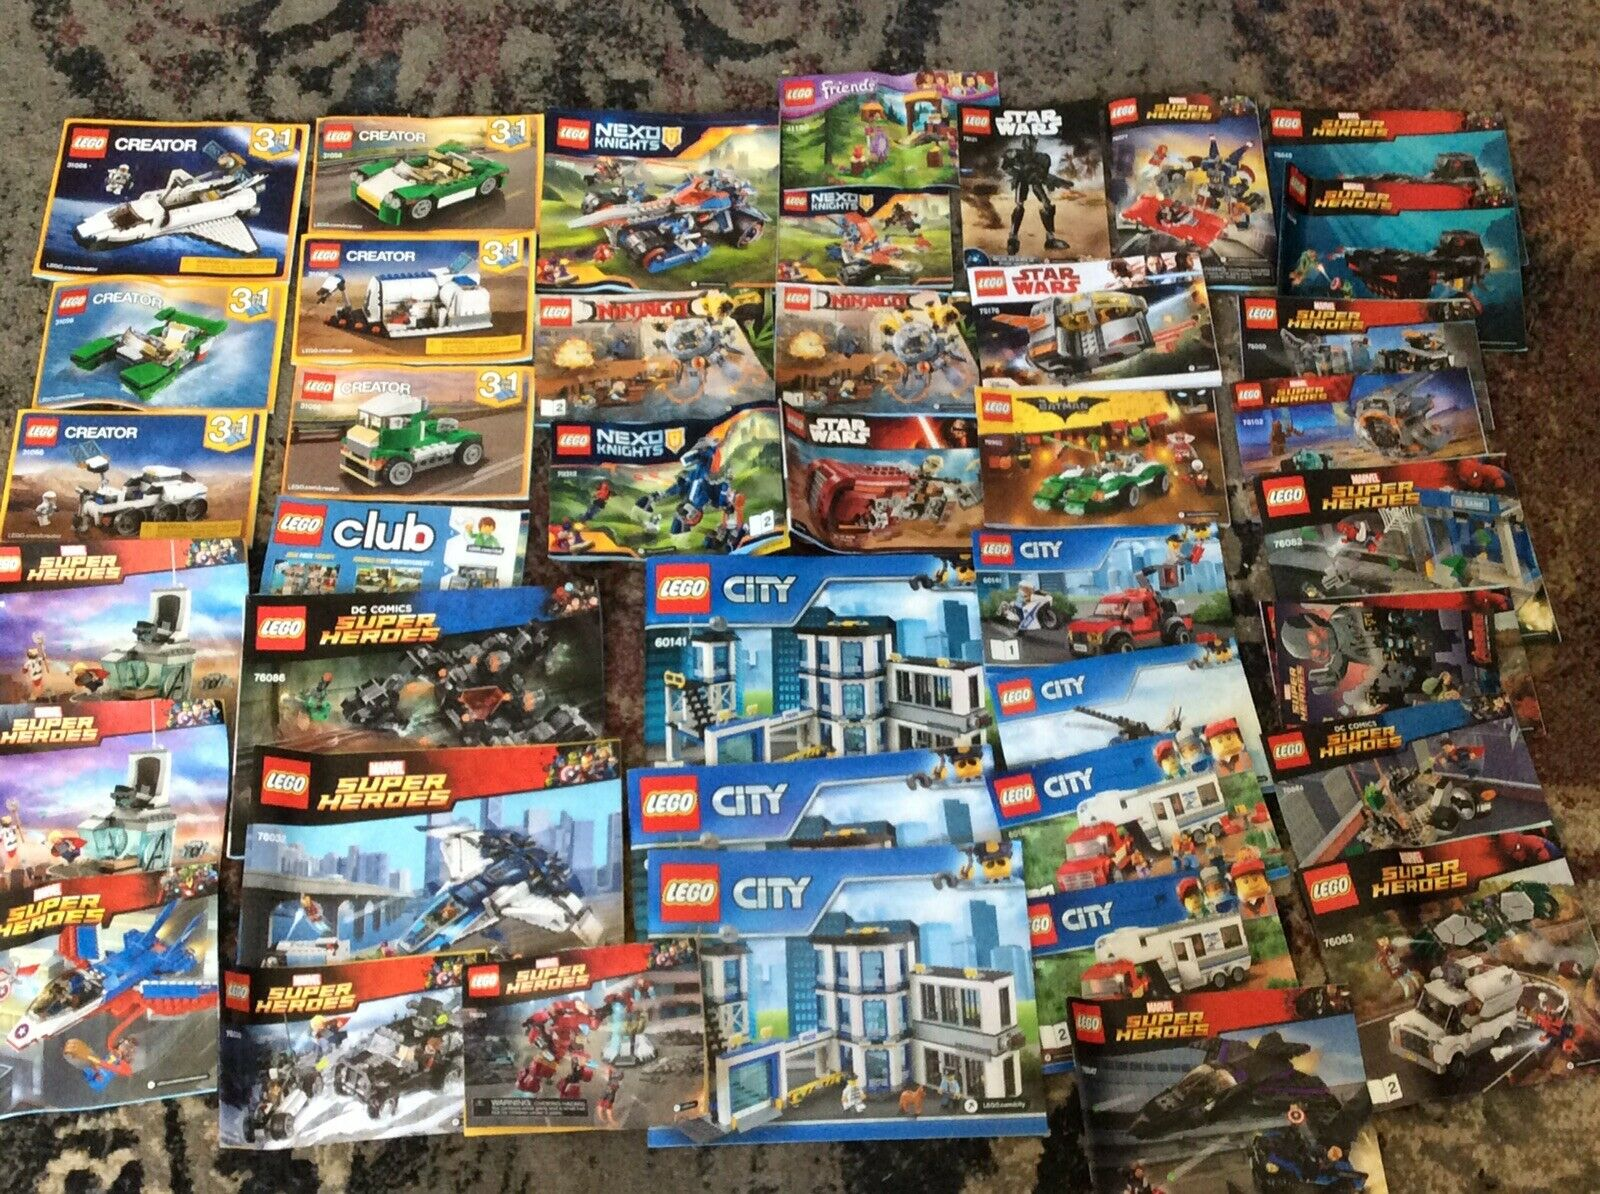 Lego Lego Lego Instruction Manuals Lot of 43 Booklets City Creator  Star Wars Super Hero 0cb51e